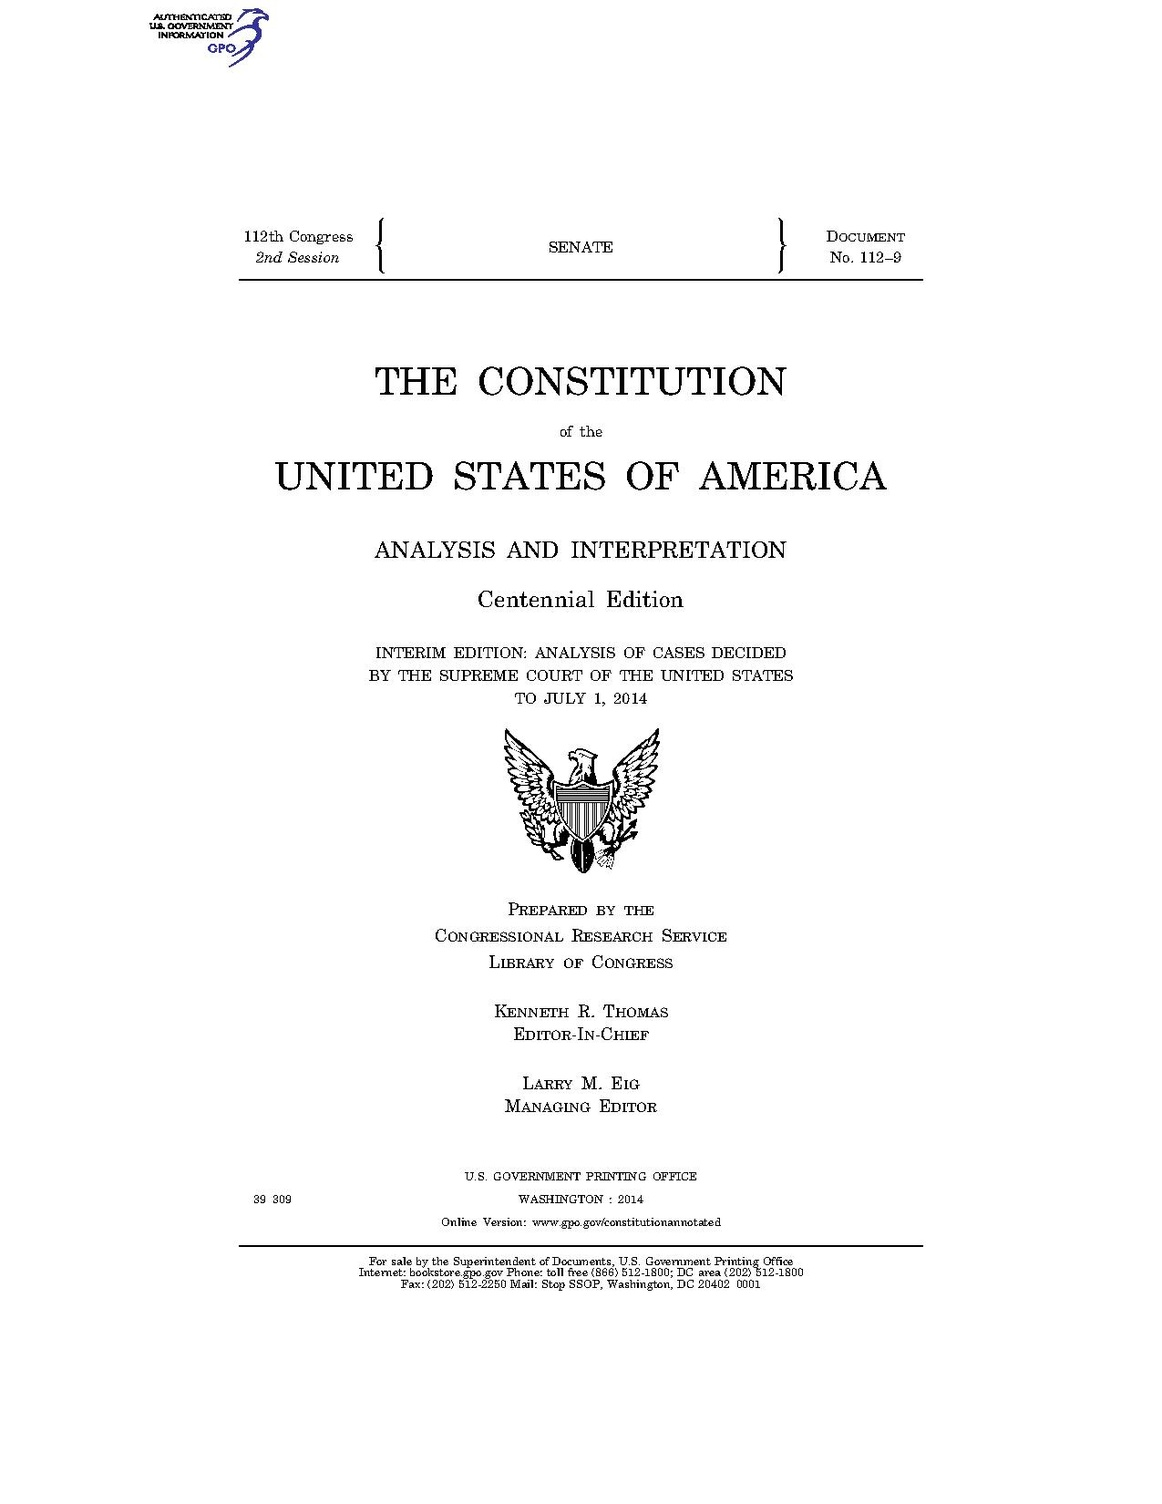 an introduction to the constitution of the united states of america We the people of the united states, in order to form a more perfect union,  establish justice, insure domestic tranquility, provide for the.